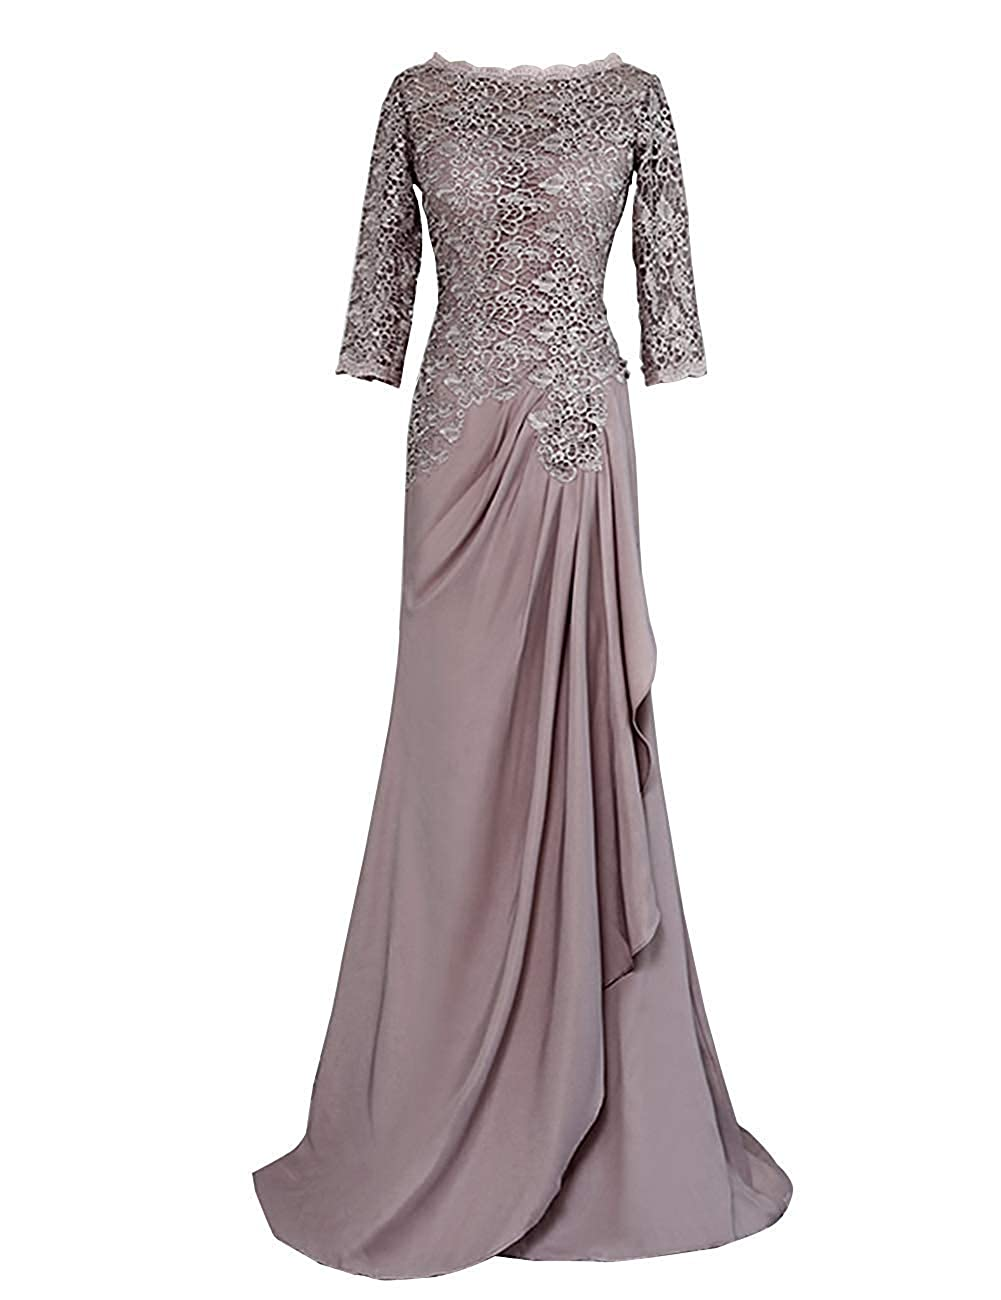 Mauve Mother of The Bride Dresses Long Sleeve Lace Evening Dress Formal Gowns Mother Gown